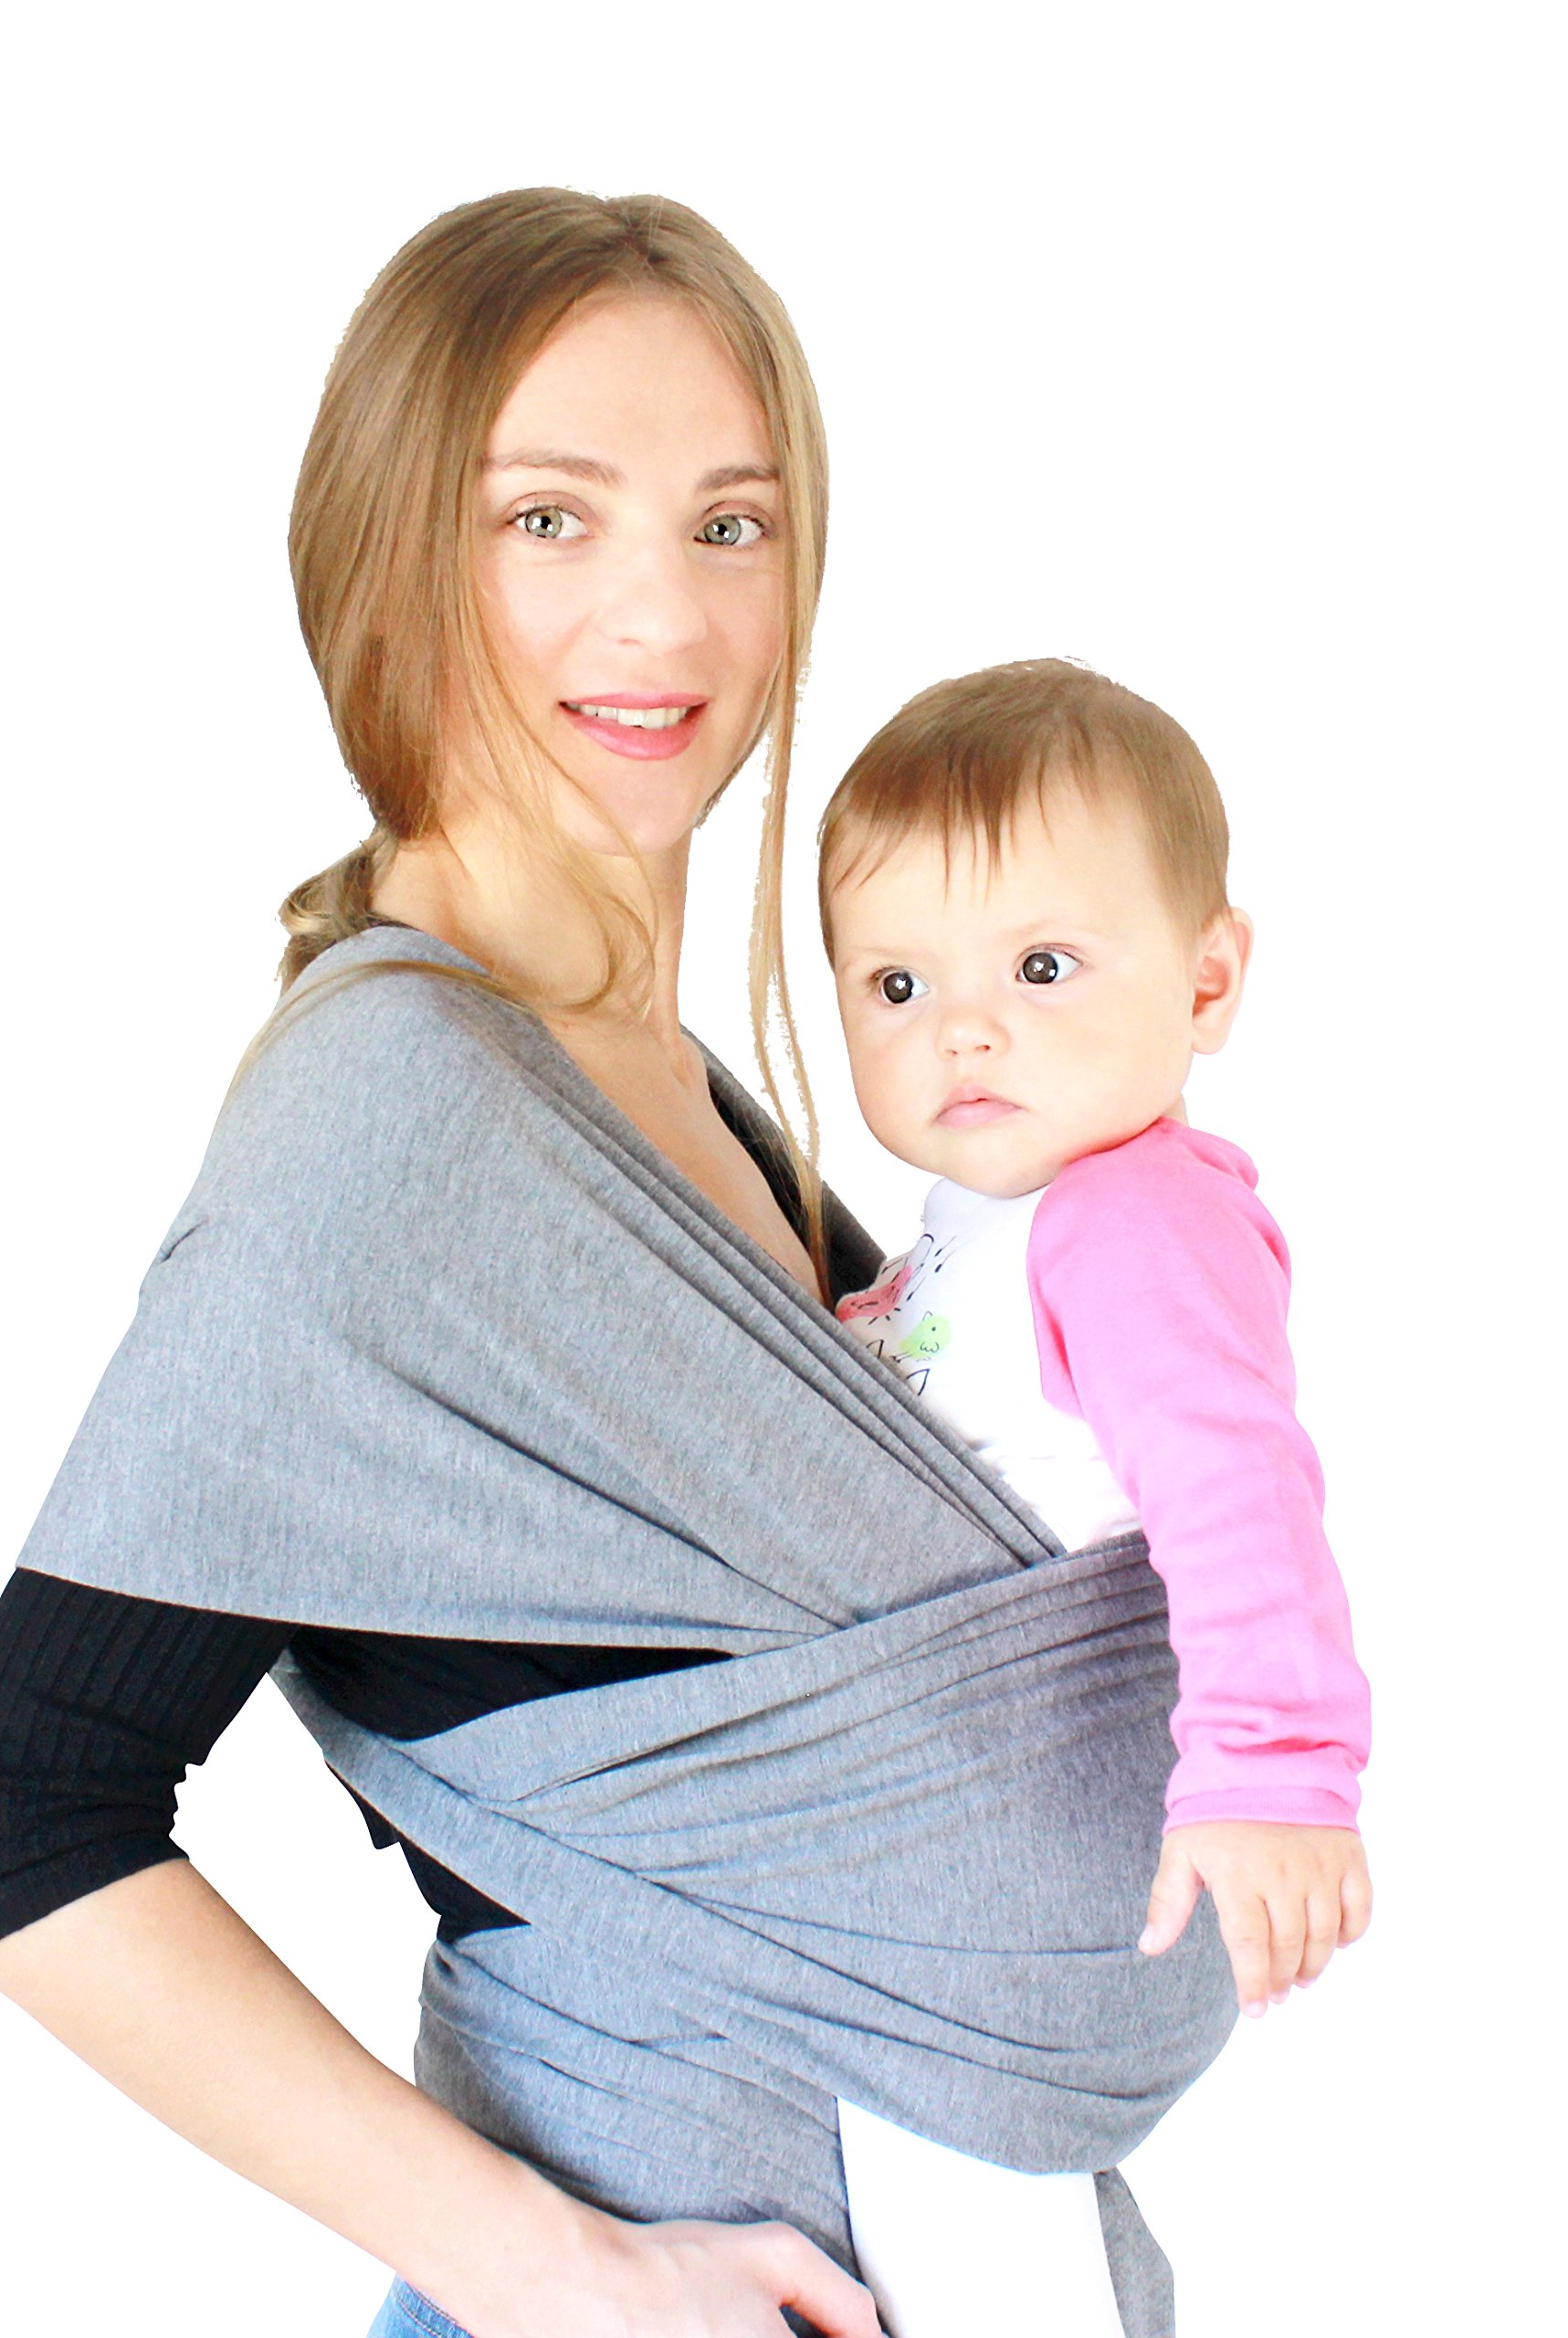 Cuddler Baby Wrap Carrier Sling - Regular and Plus Size - Newborn to Toddler - Multiple Colors - Pacifier Clips Included - Makes A Great Baby Shower Gift